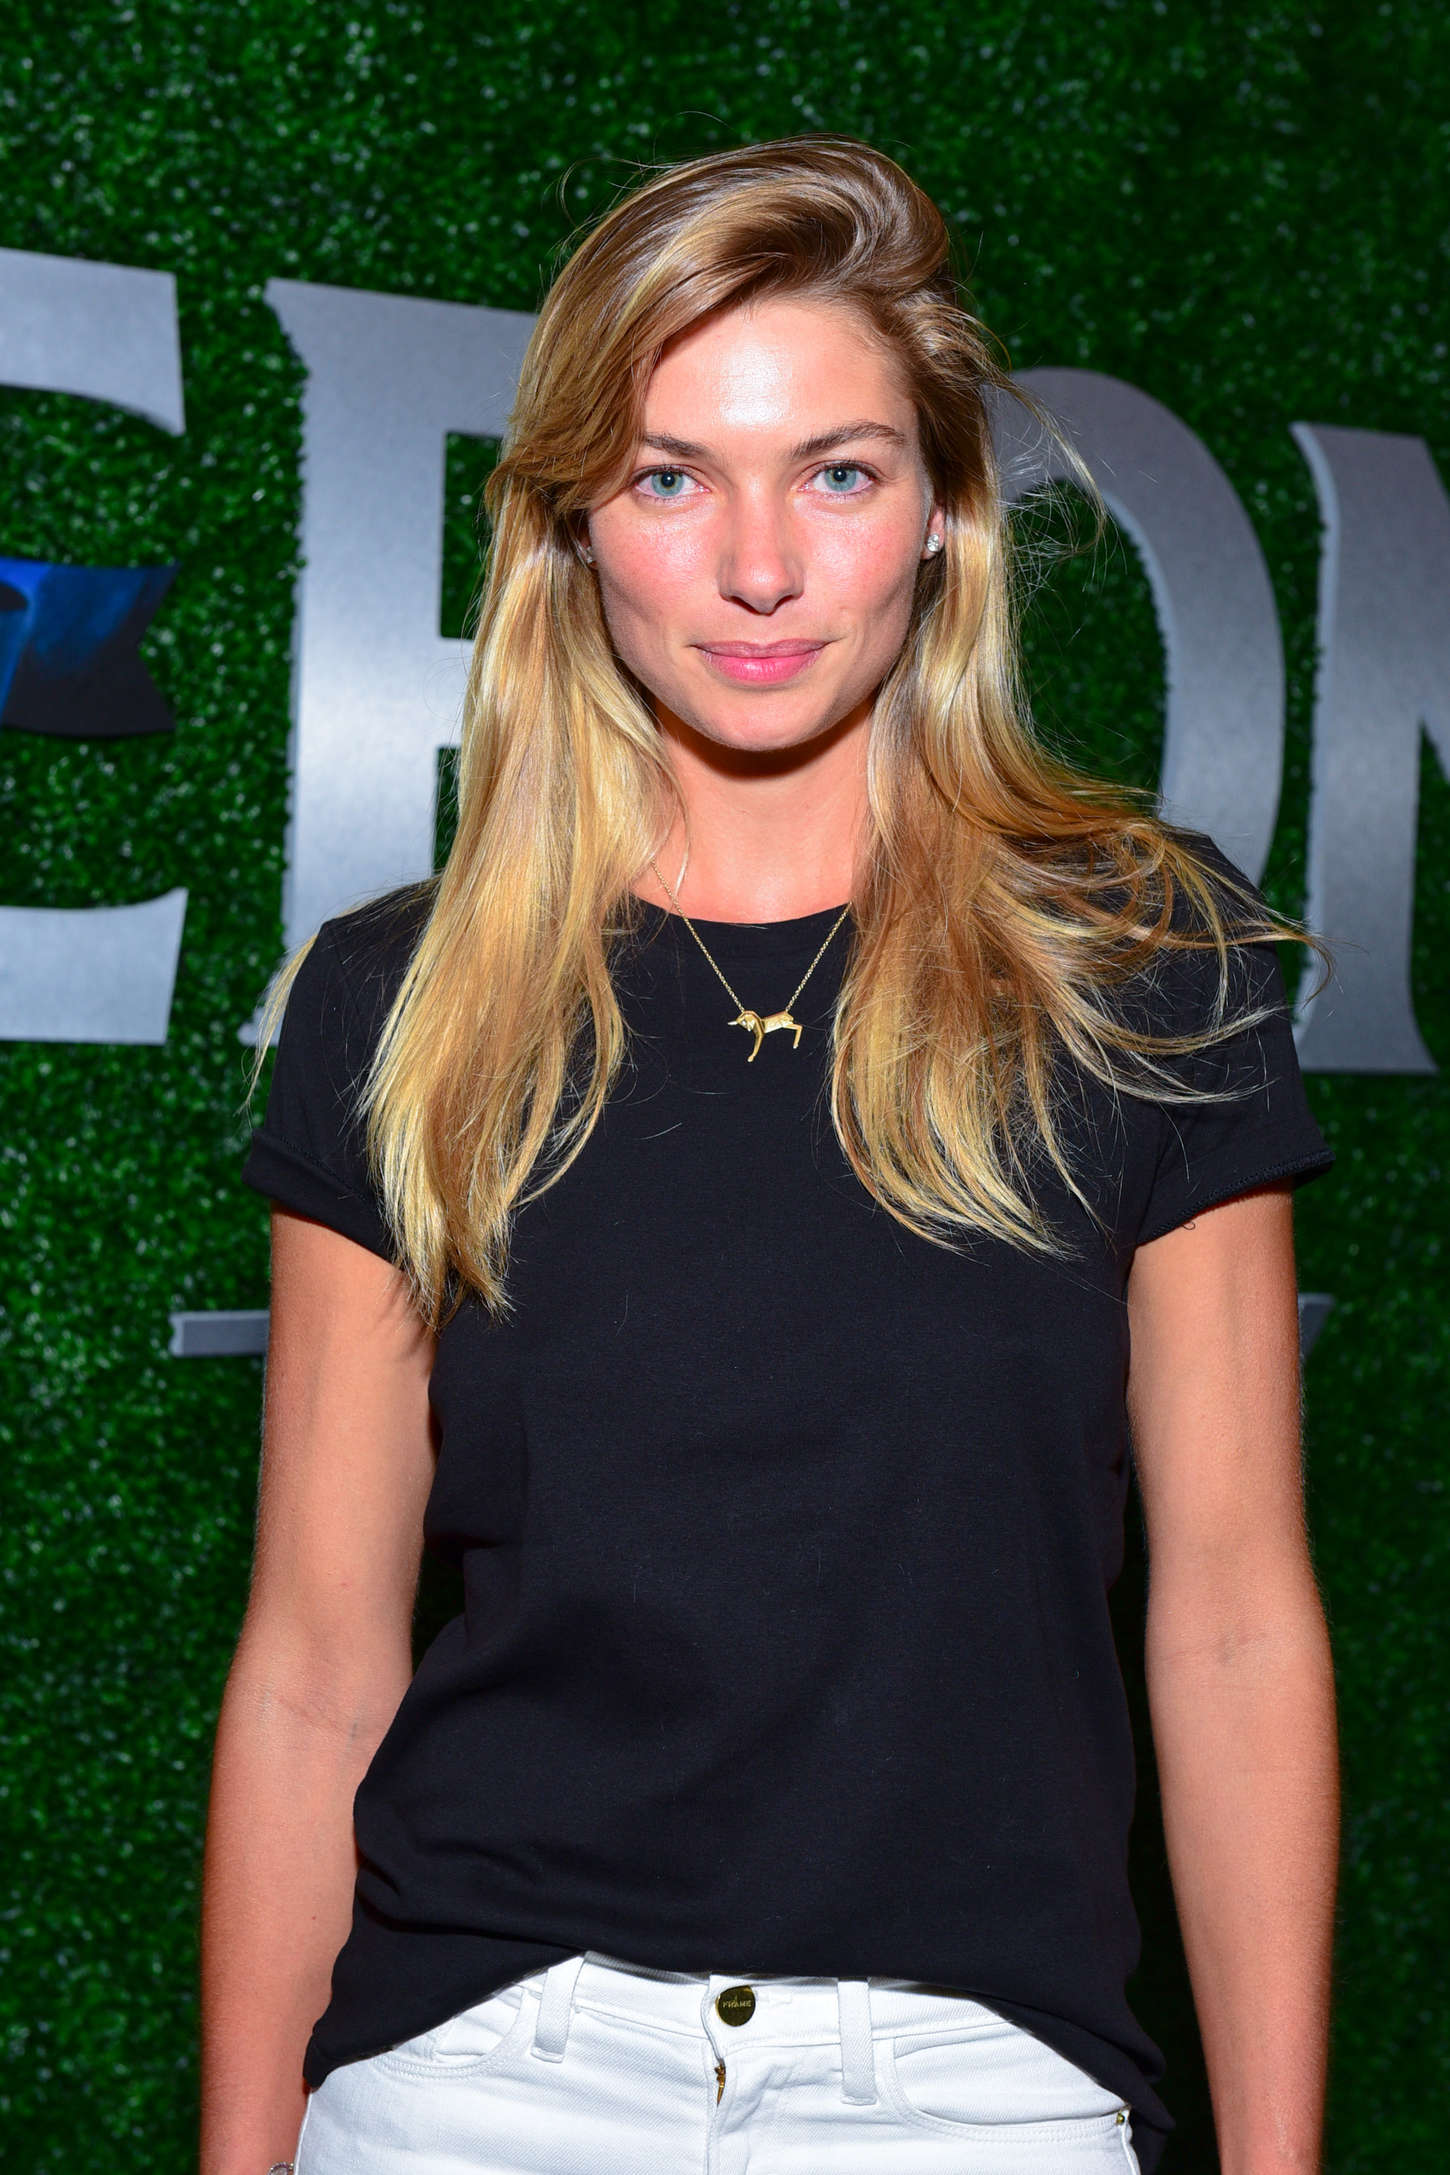 Jessica Hart Margherita Missoni Peroni Nastro Azzurro's Fall Fashion Collaboration debut in New York